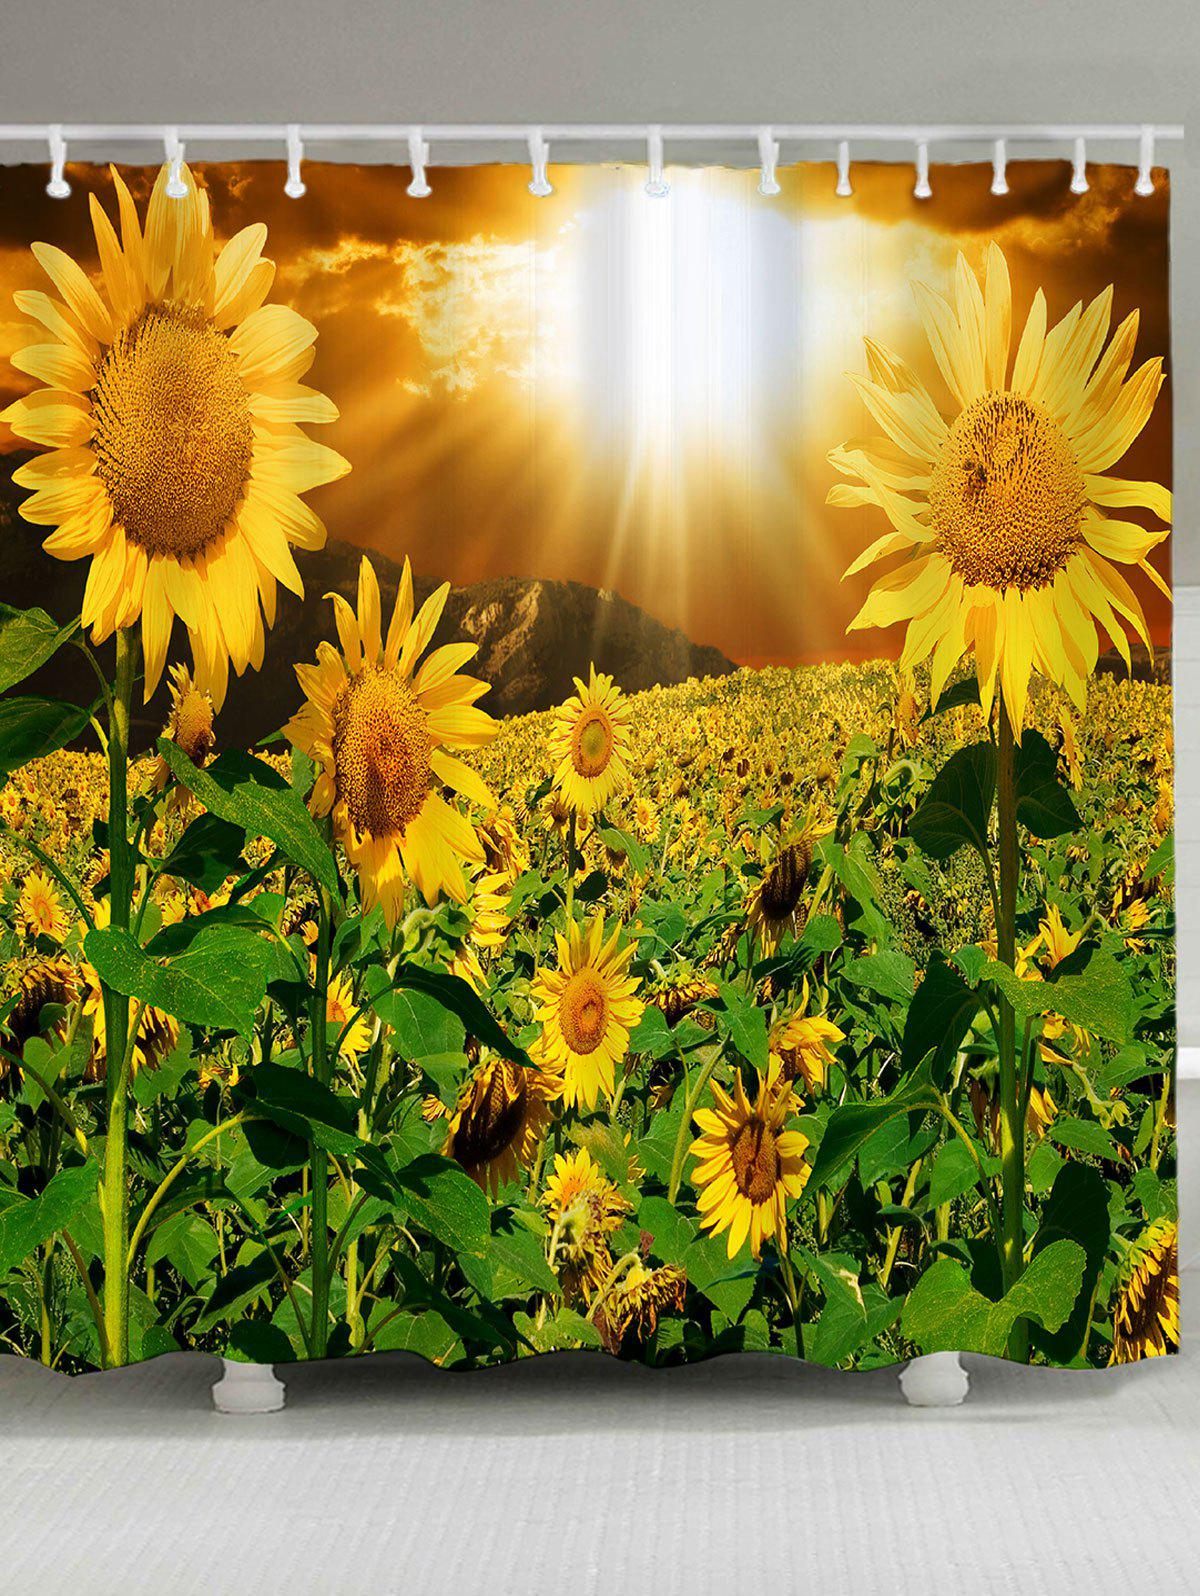 2018 waterproof sunshine sunflowers printec shower curtain. Black Bedroom Furniture Sets. Home Design Ideas